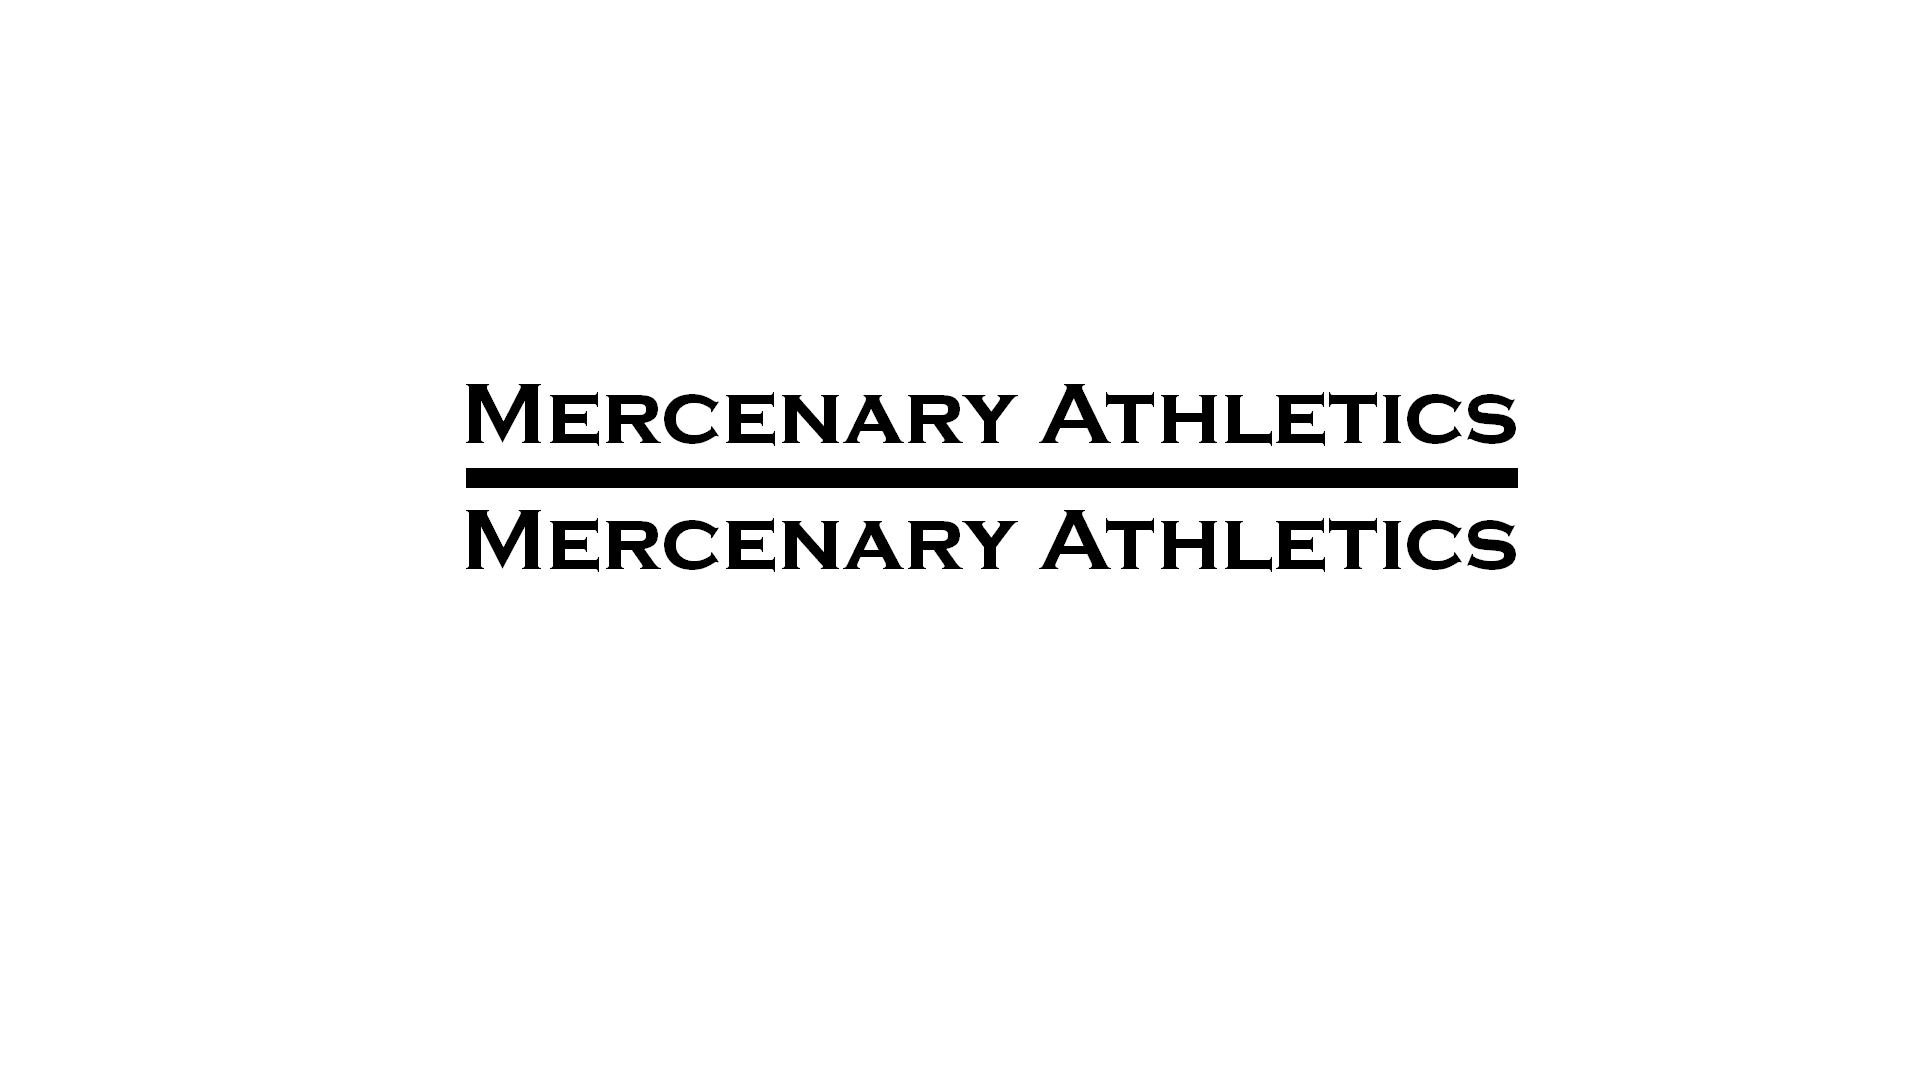 Mercenary Athletics (Bottle design) Image